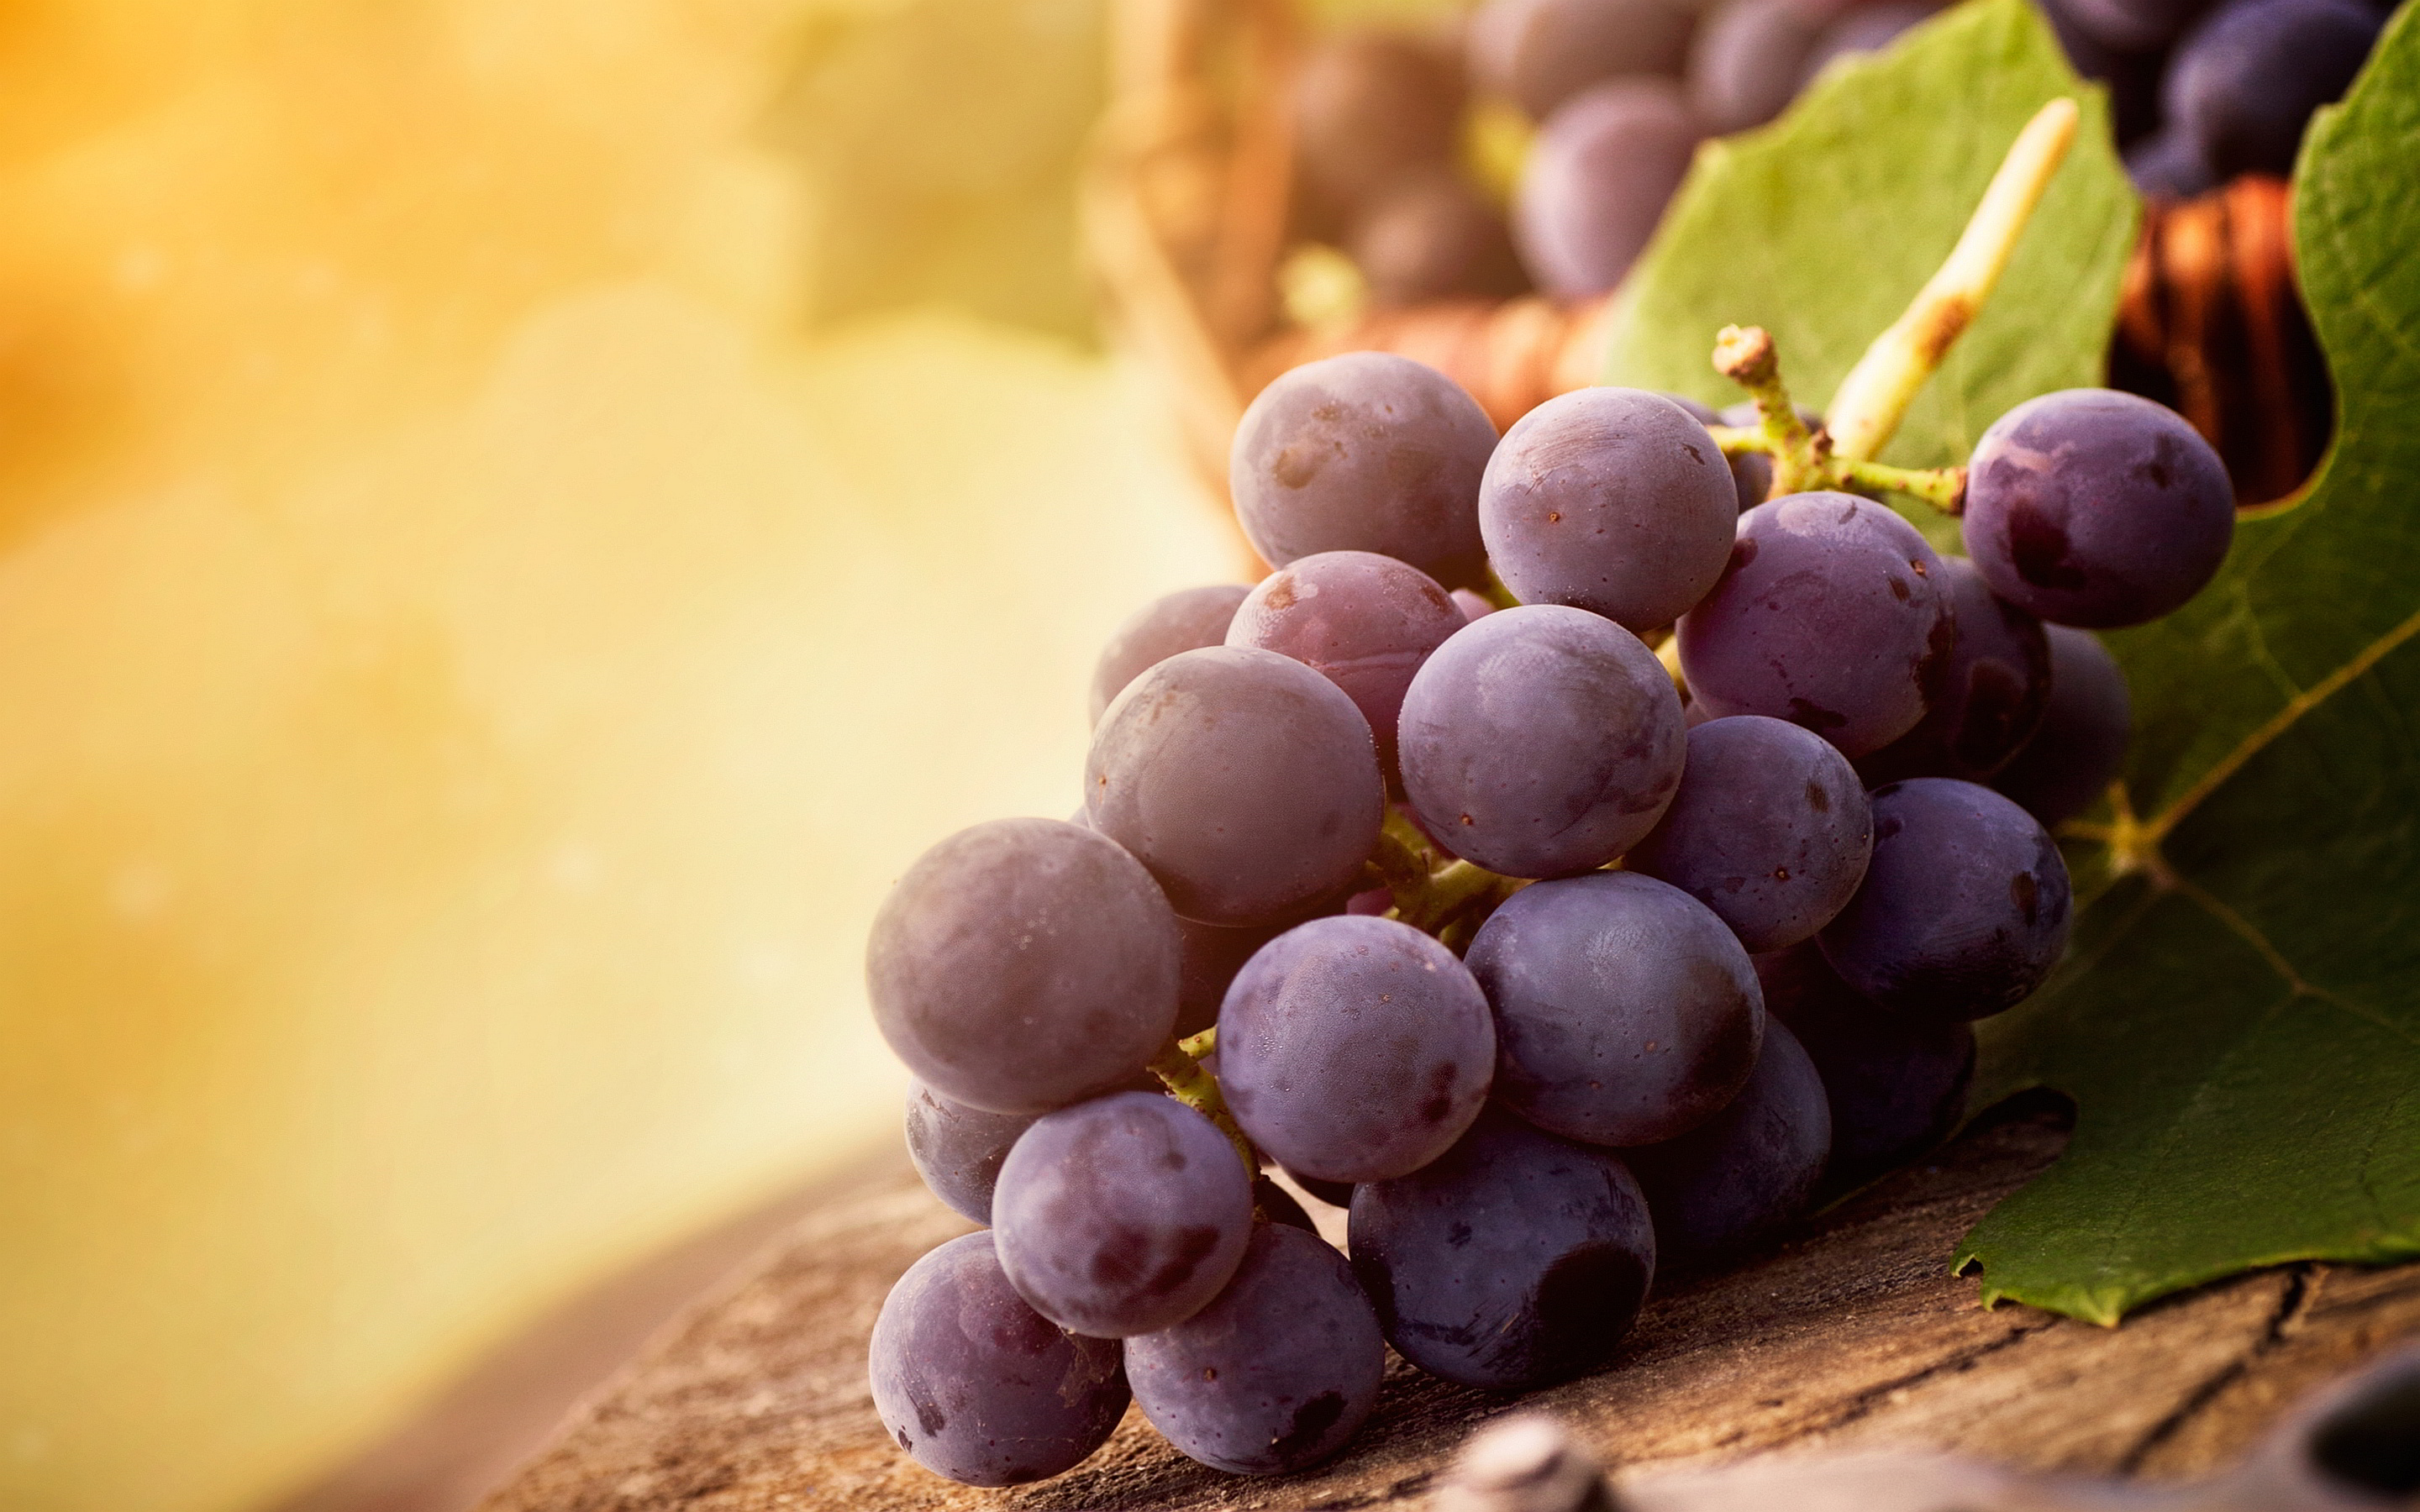 Grapes Fruit Wallpaper HD Desktop Images One HD 2880x1800